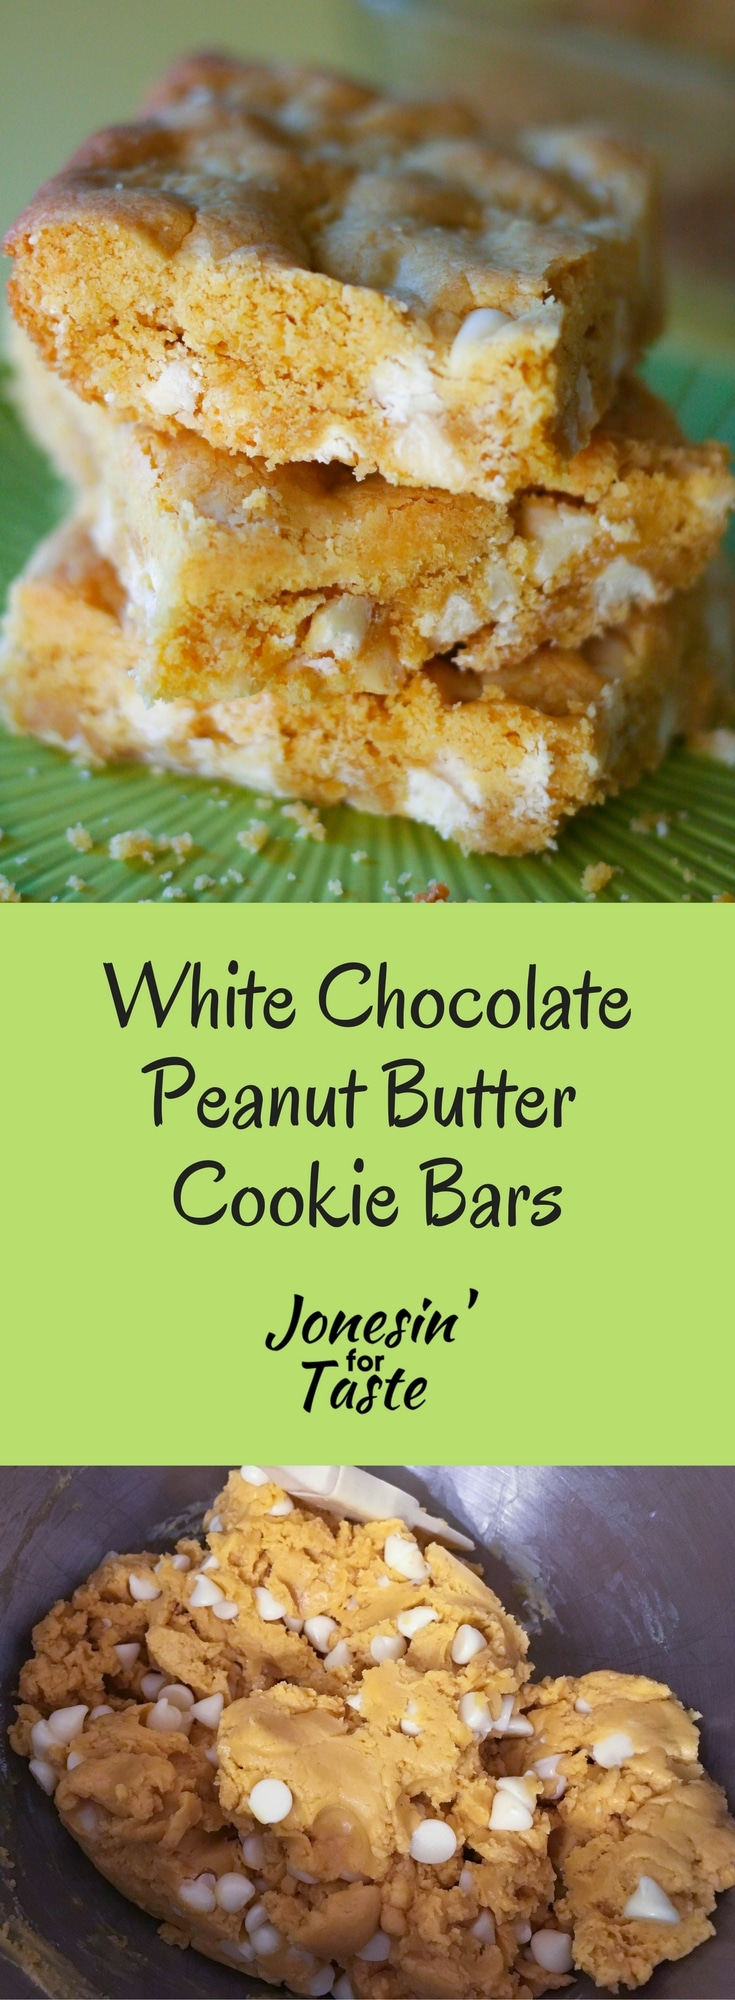 Easy White Chocolate Peanut Butter Cookie Bars use a cake mix base and creamy peanut butter and are chock full of white chocolate chips. #cookies #easycookierecipes